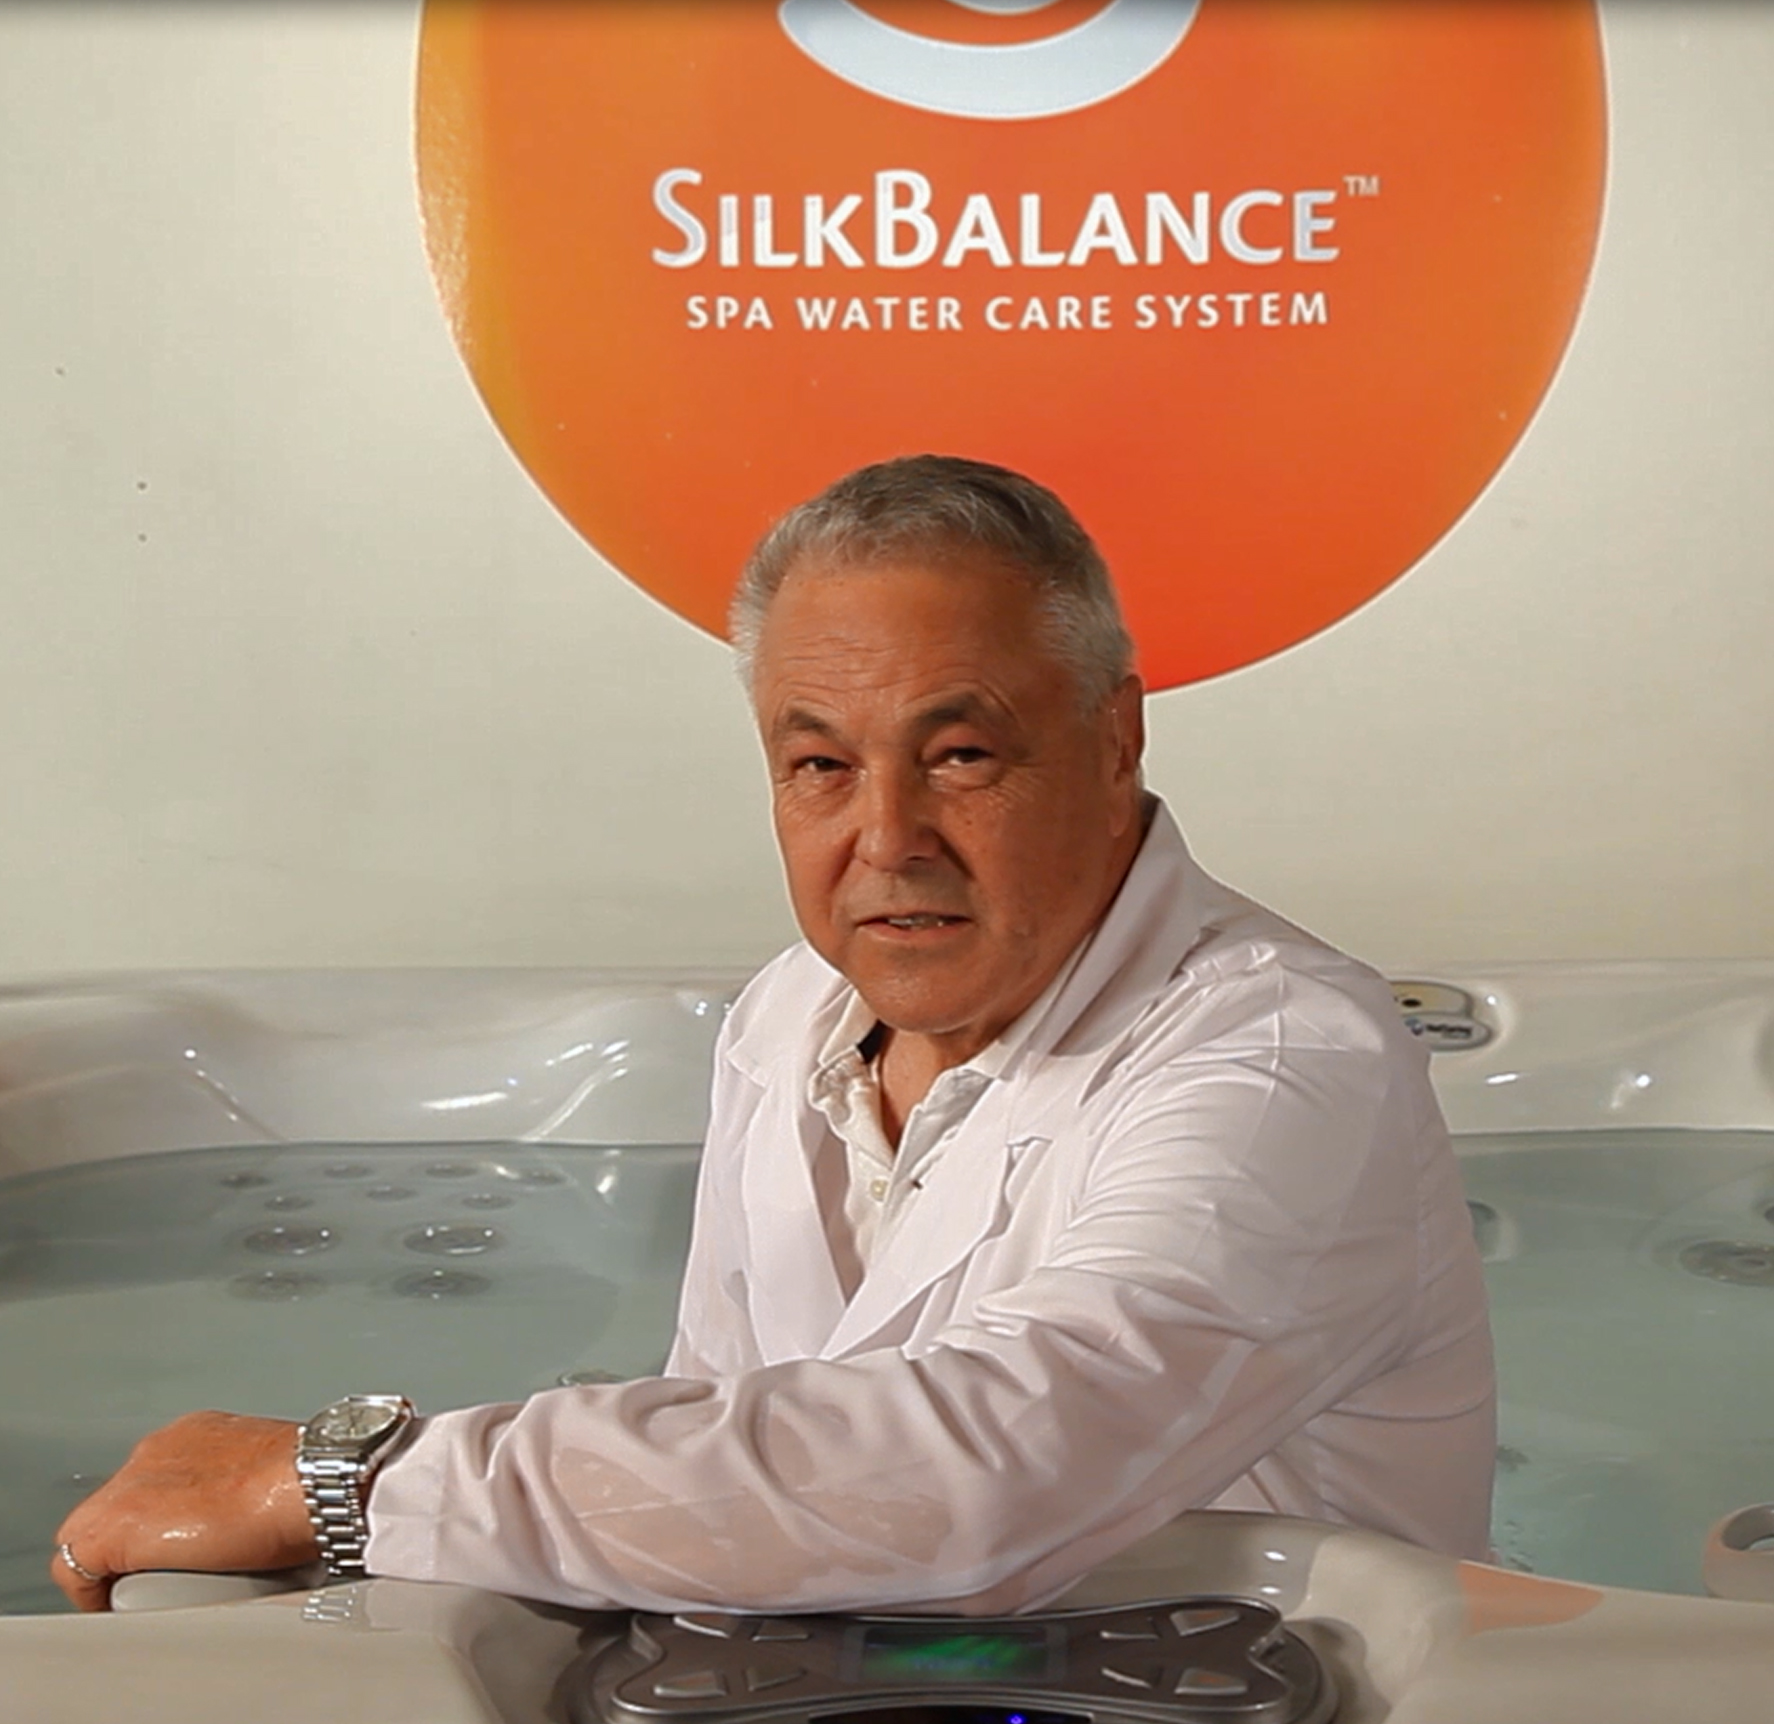 SilkBalance lead chemist Colin Taylor helps you solve your spa water care problems